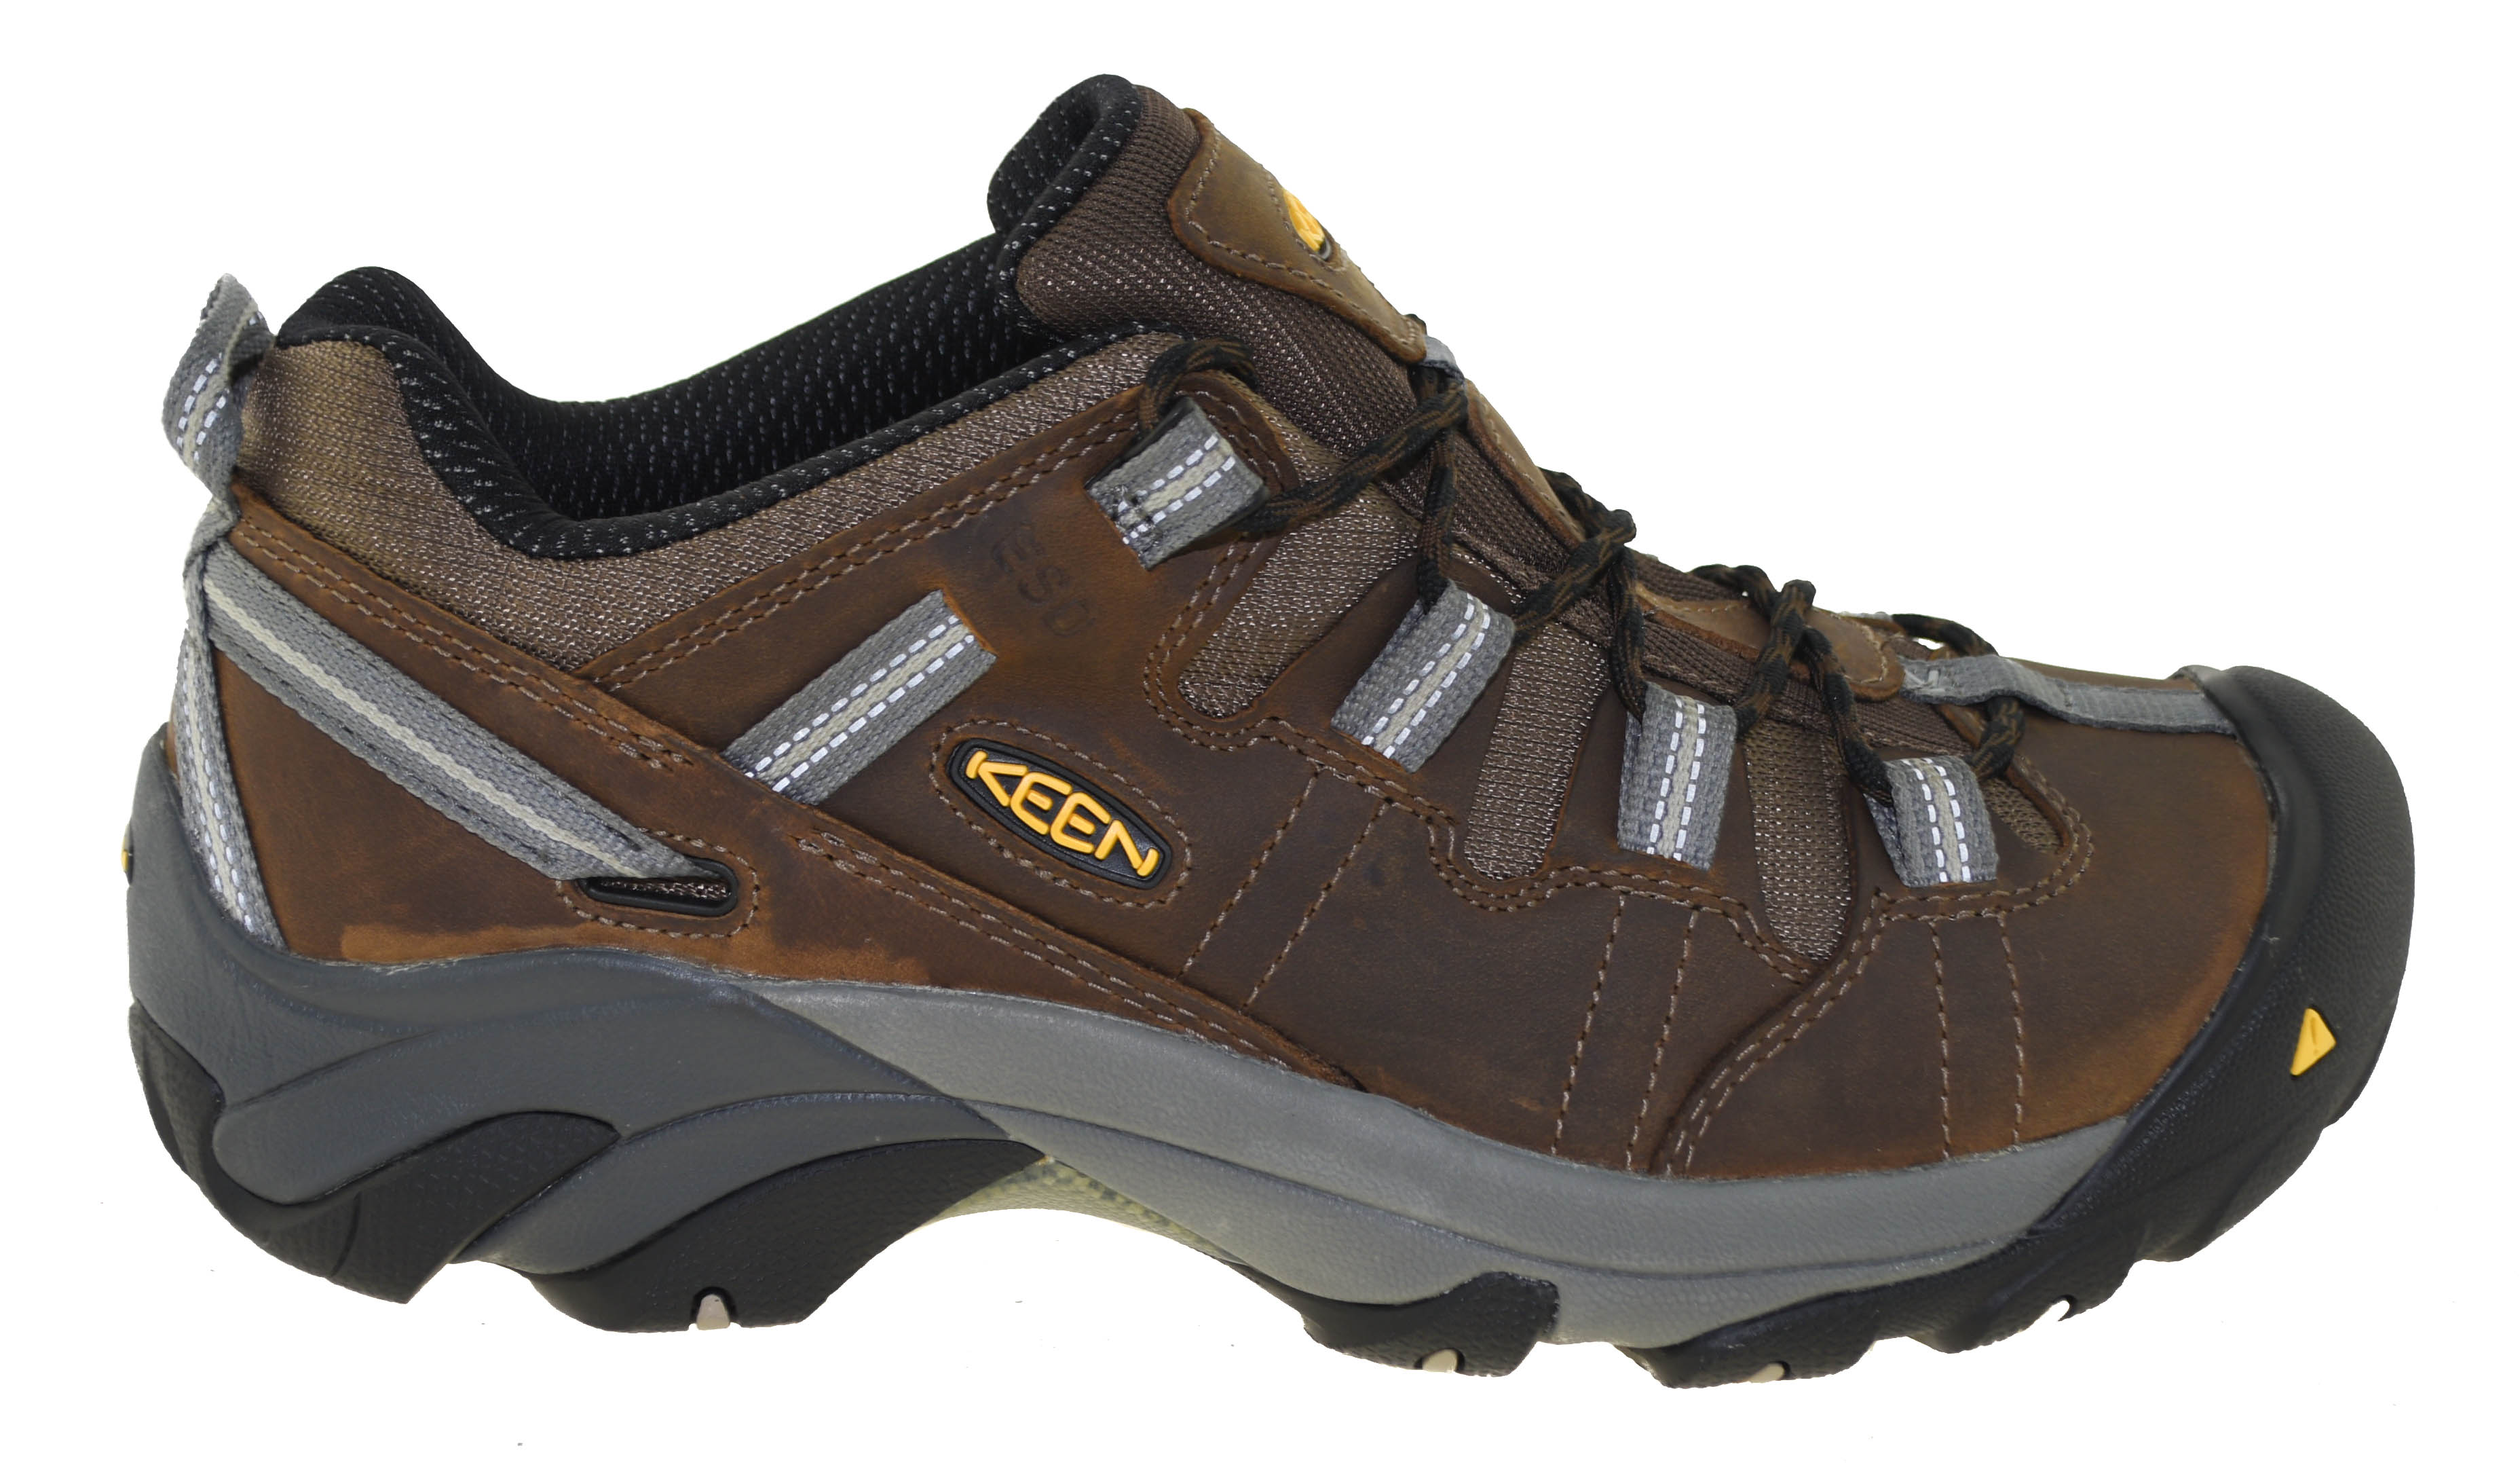 e8233b6b768 Details about Keen Utility Men's Detroit Low ESD Steel Toe Work Shoes Style  1007012